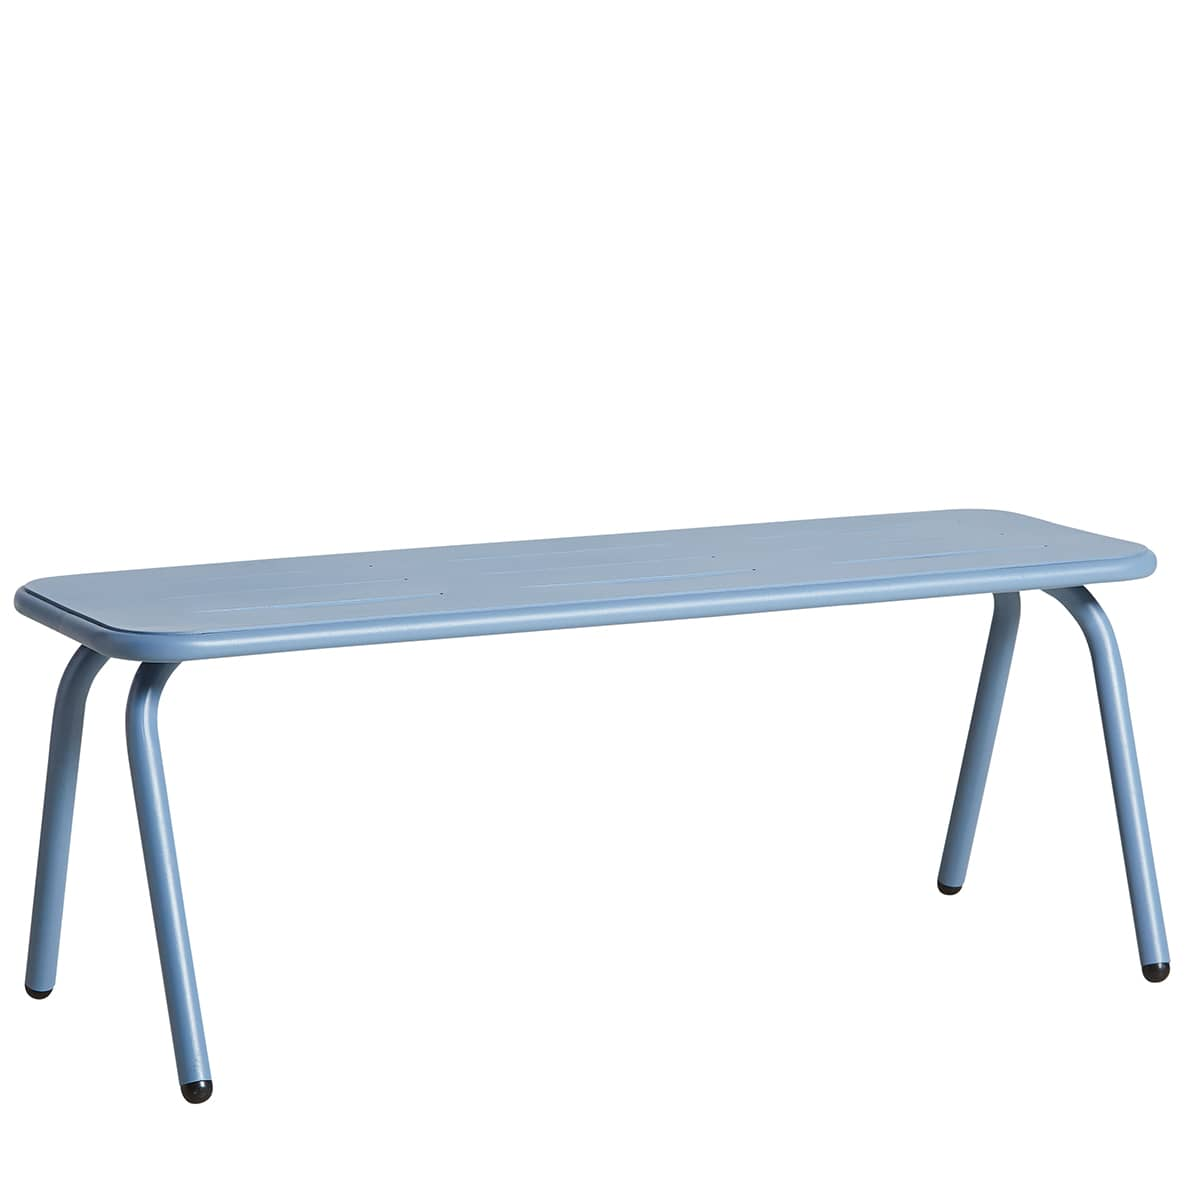 RAY outdoor bench, design and resistant, by WOUD